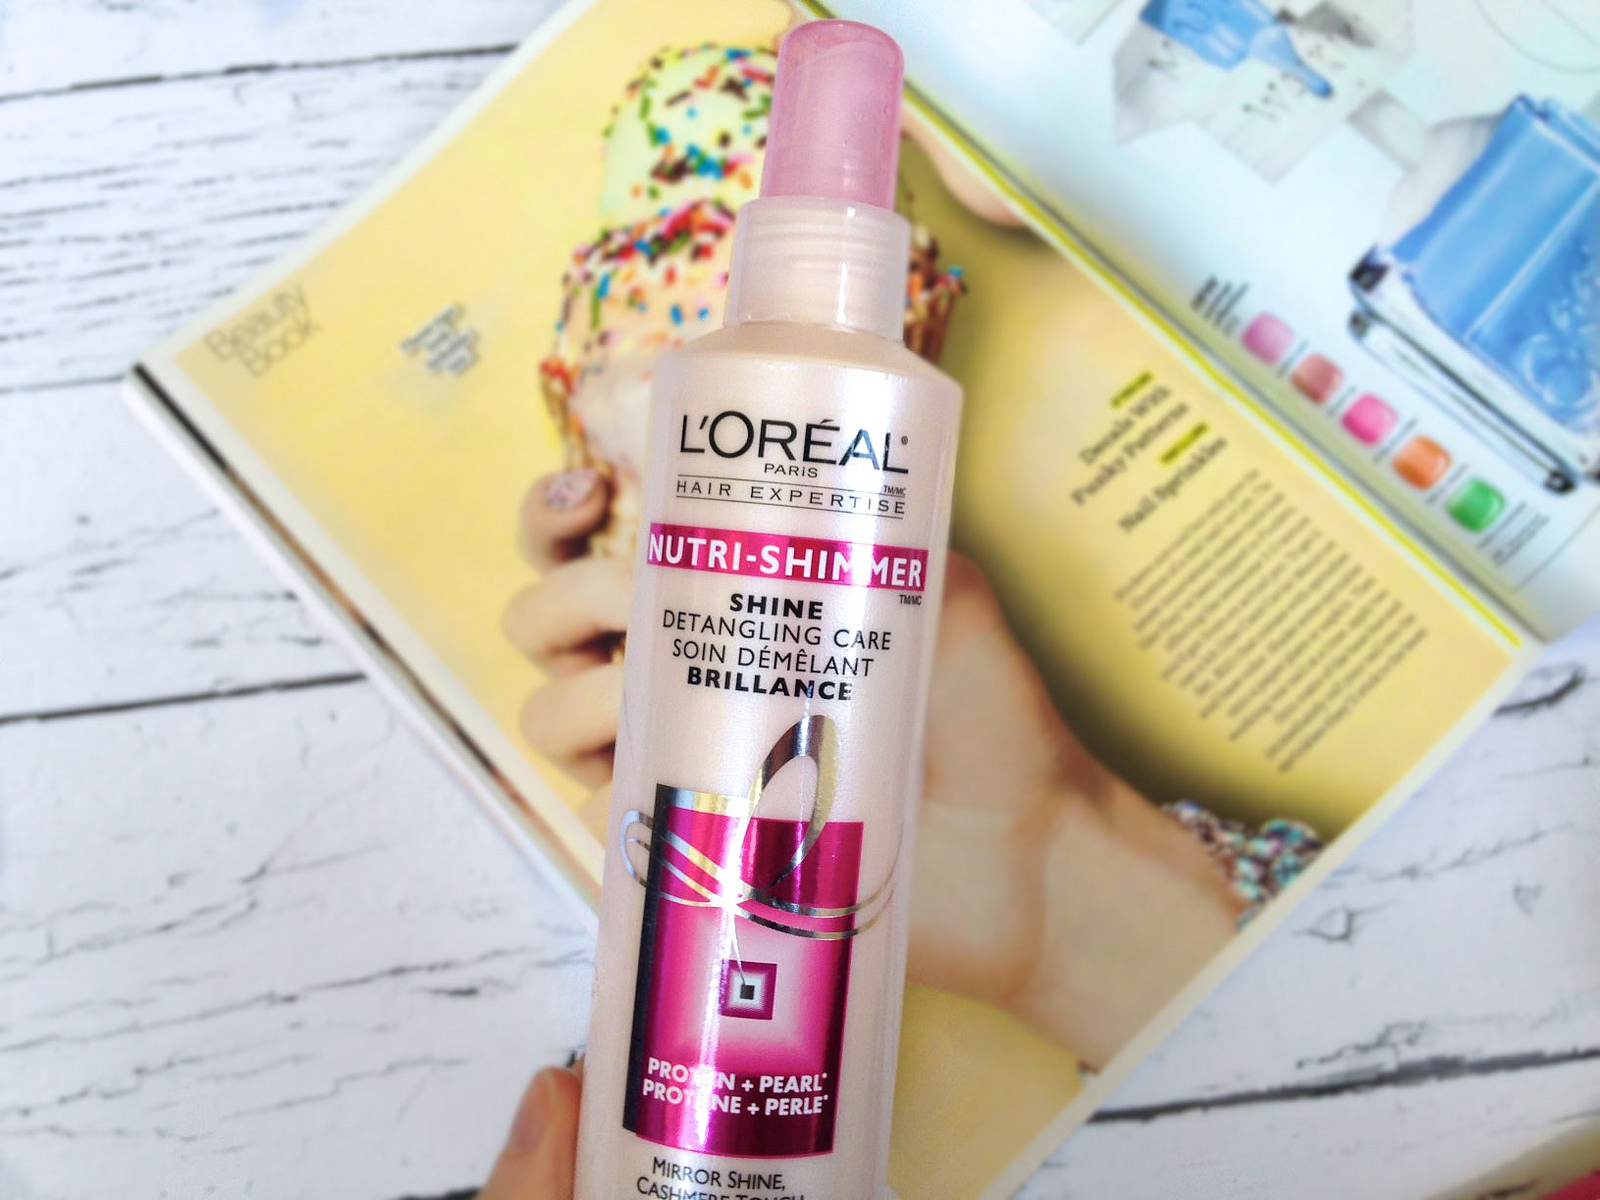 L'Oreal Nutri-Shimmer Shine Detangling Care Review